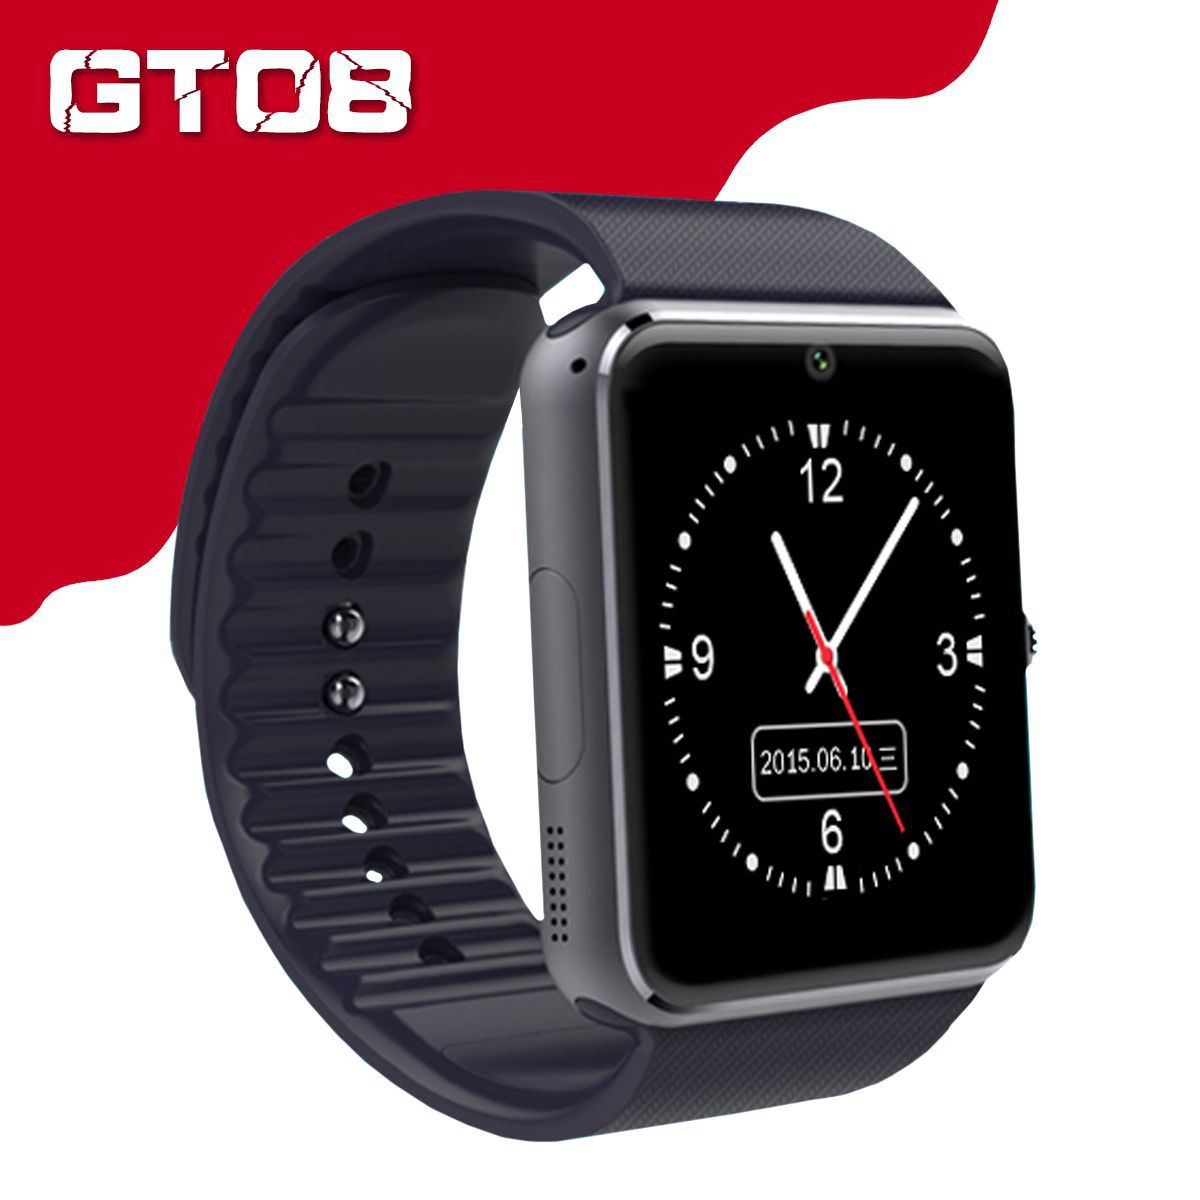 GT08 Smart Watch Bluetooth Smartwatches For Android Smartphones SIM Card Slot NFC Health Watchs for Android with Retail Box